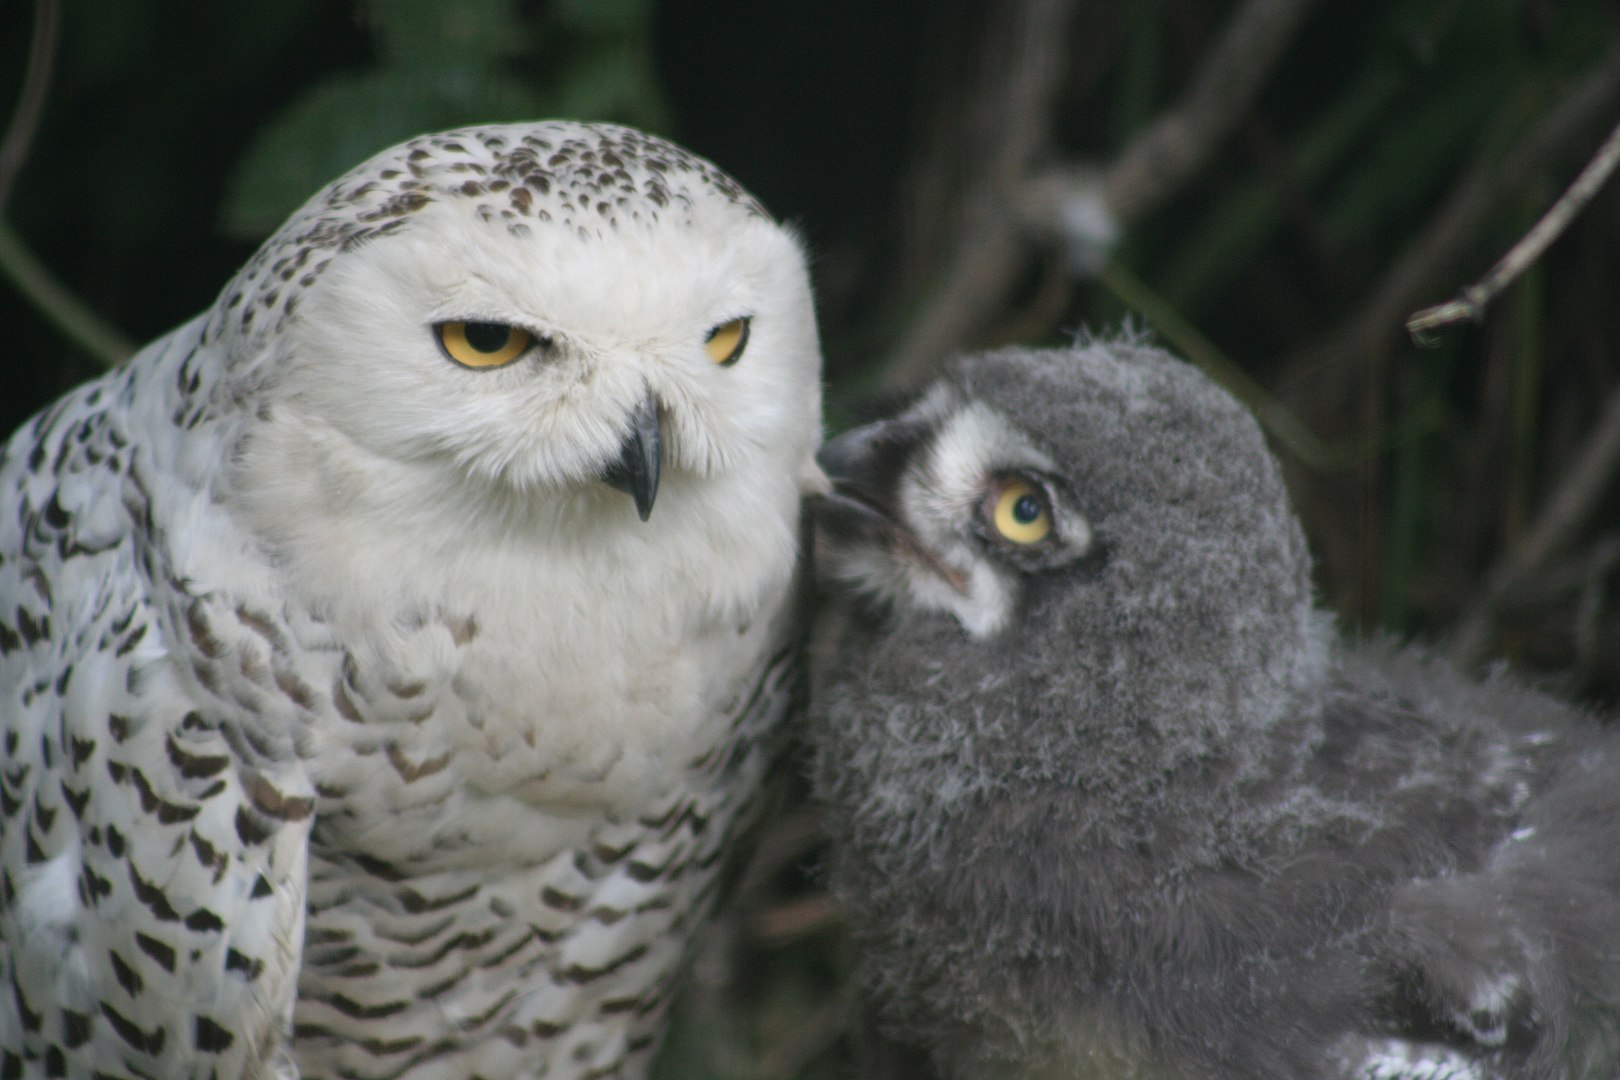 Snowy Owl Facts, Female and Chick